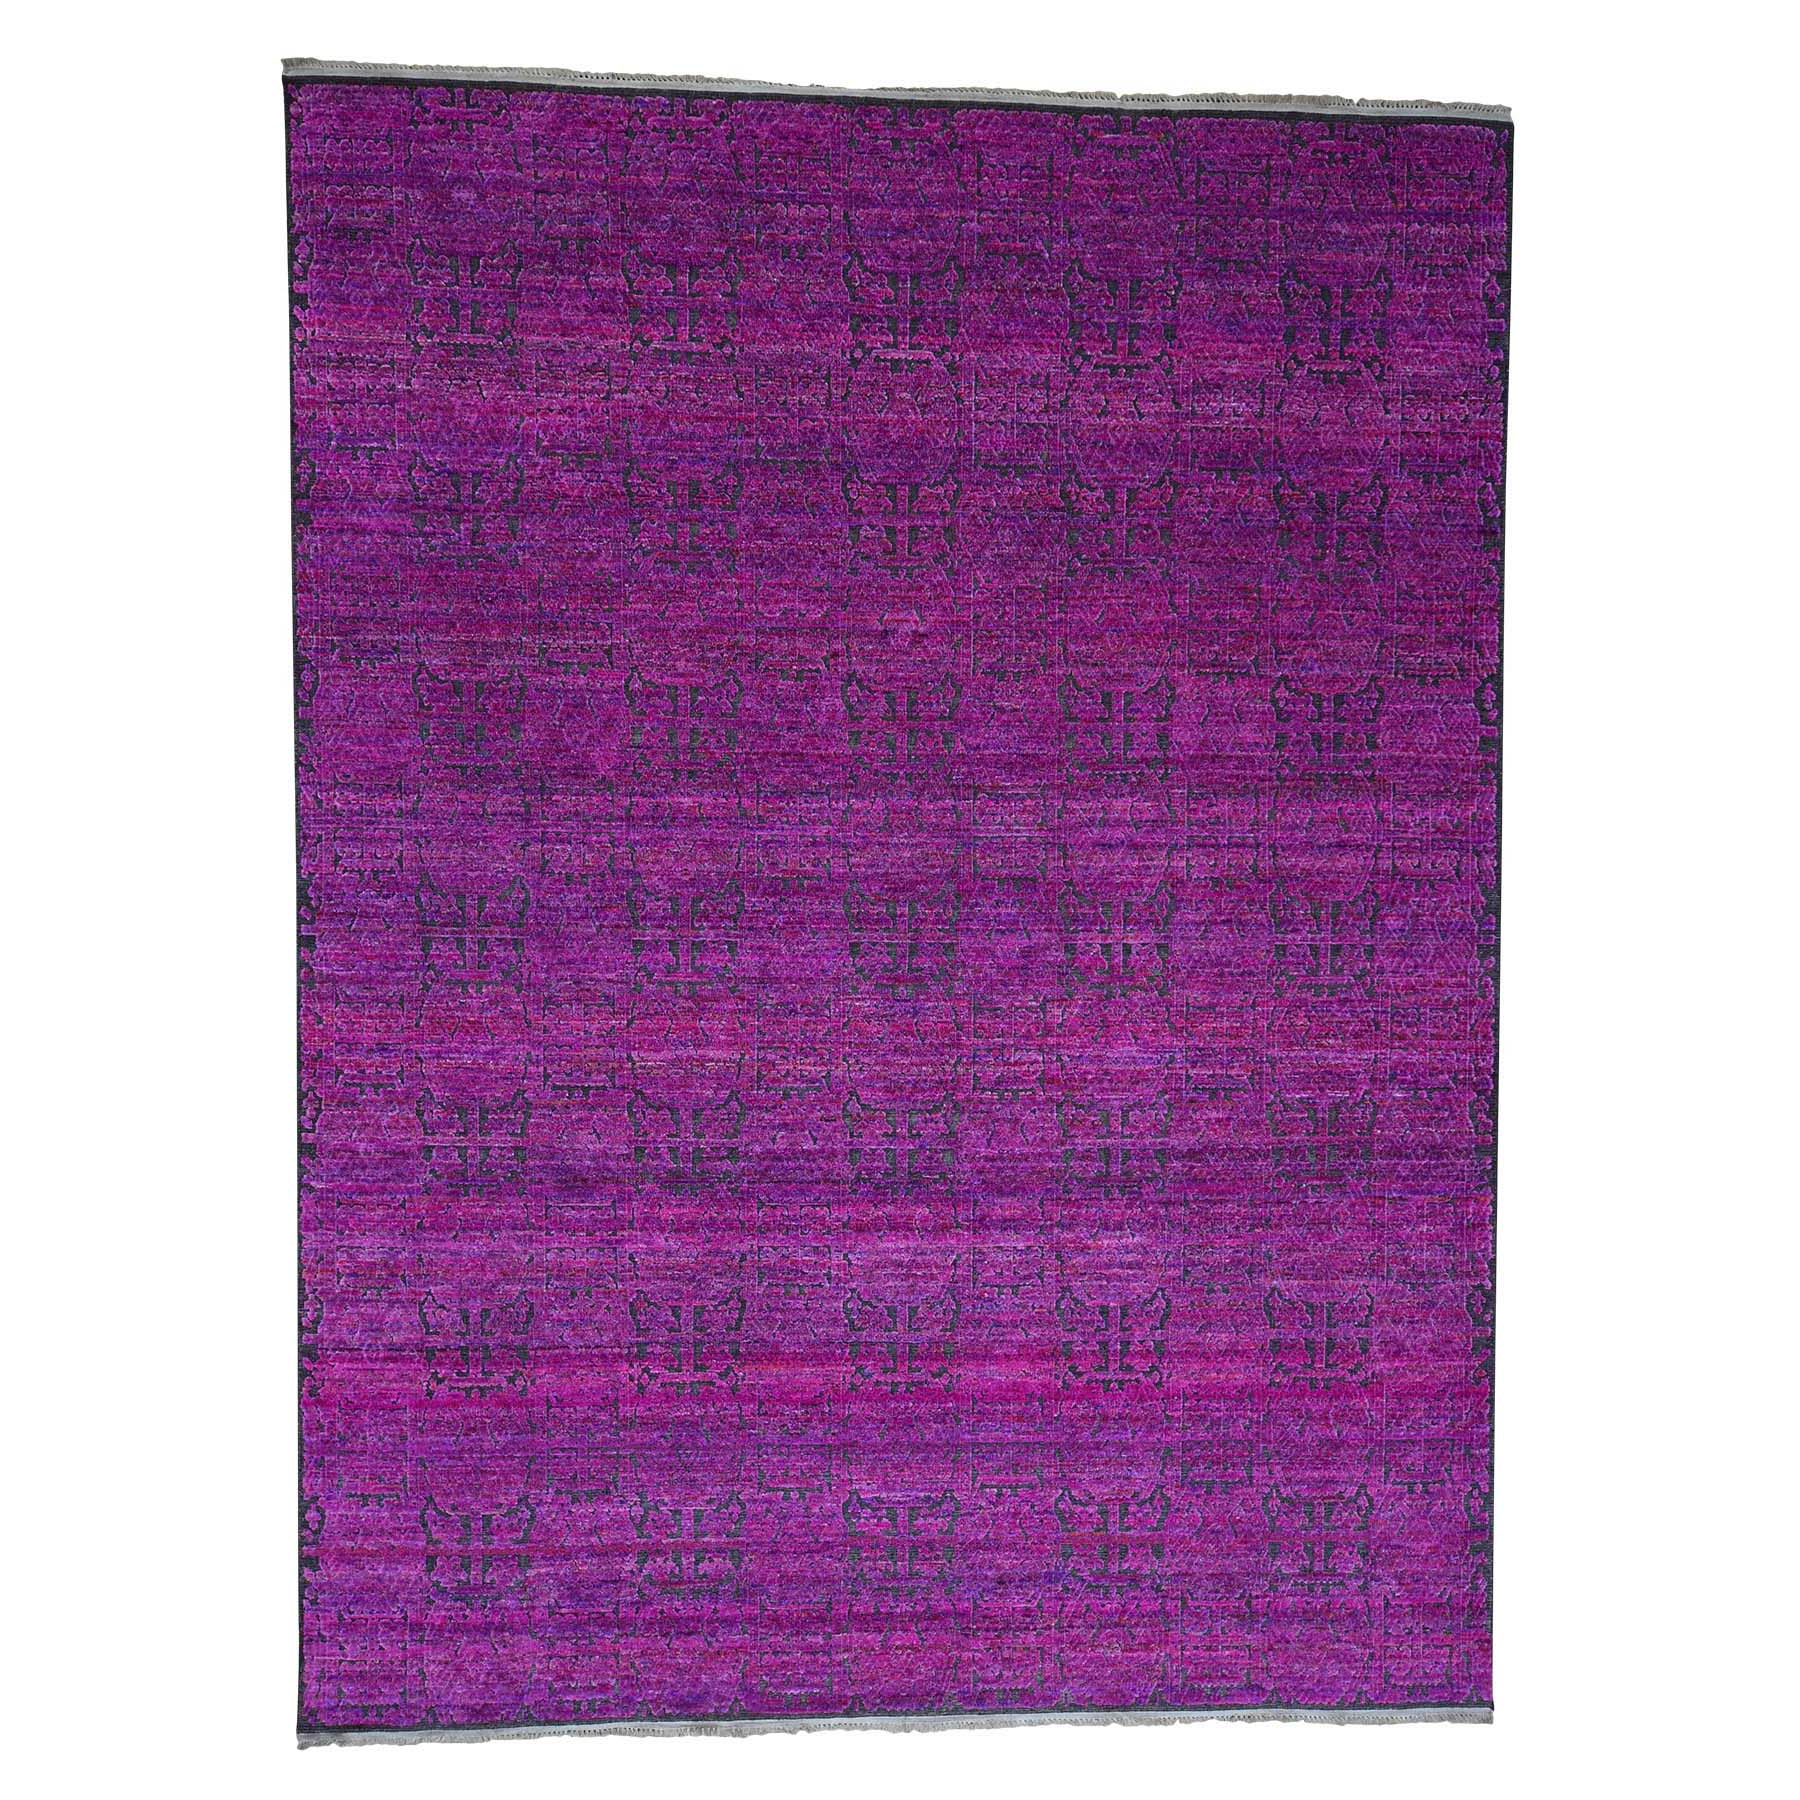 Mid Century Modern Collection Hand Knotted Pink Rug No: 0181216